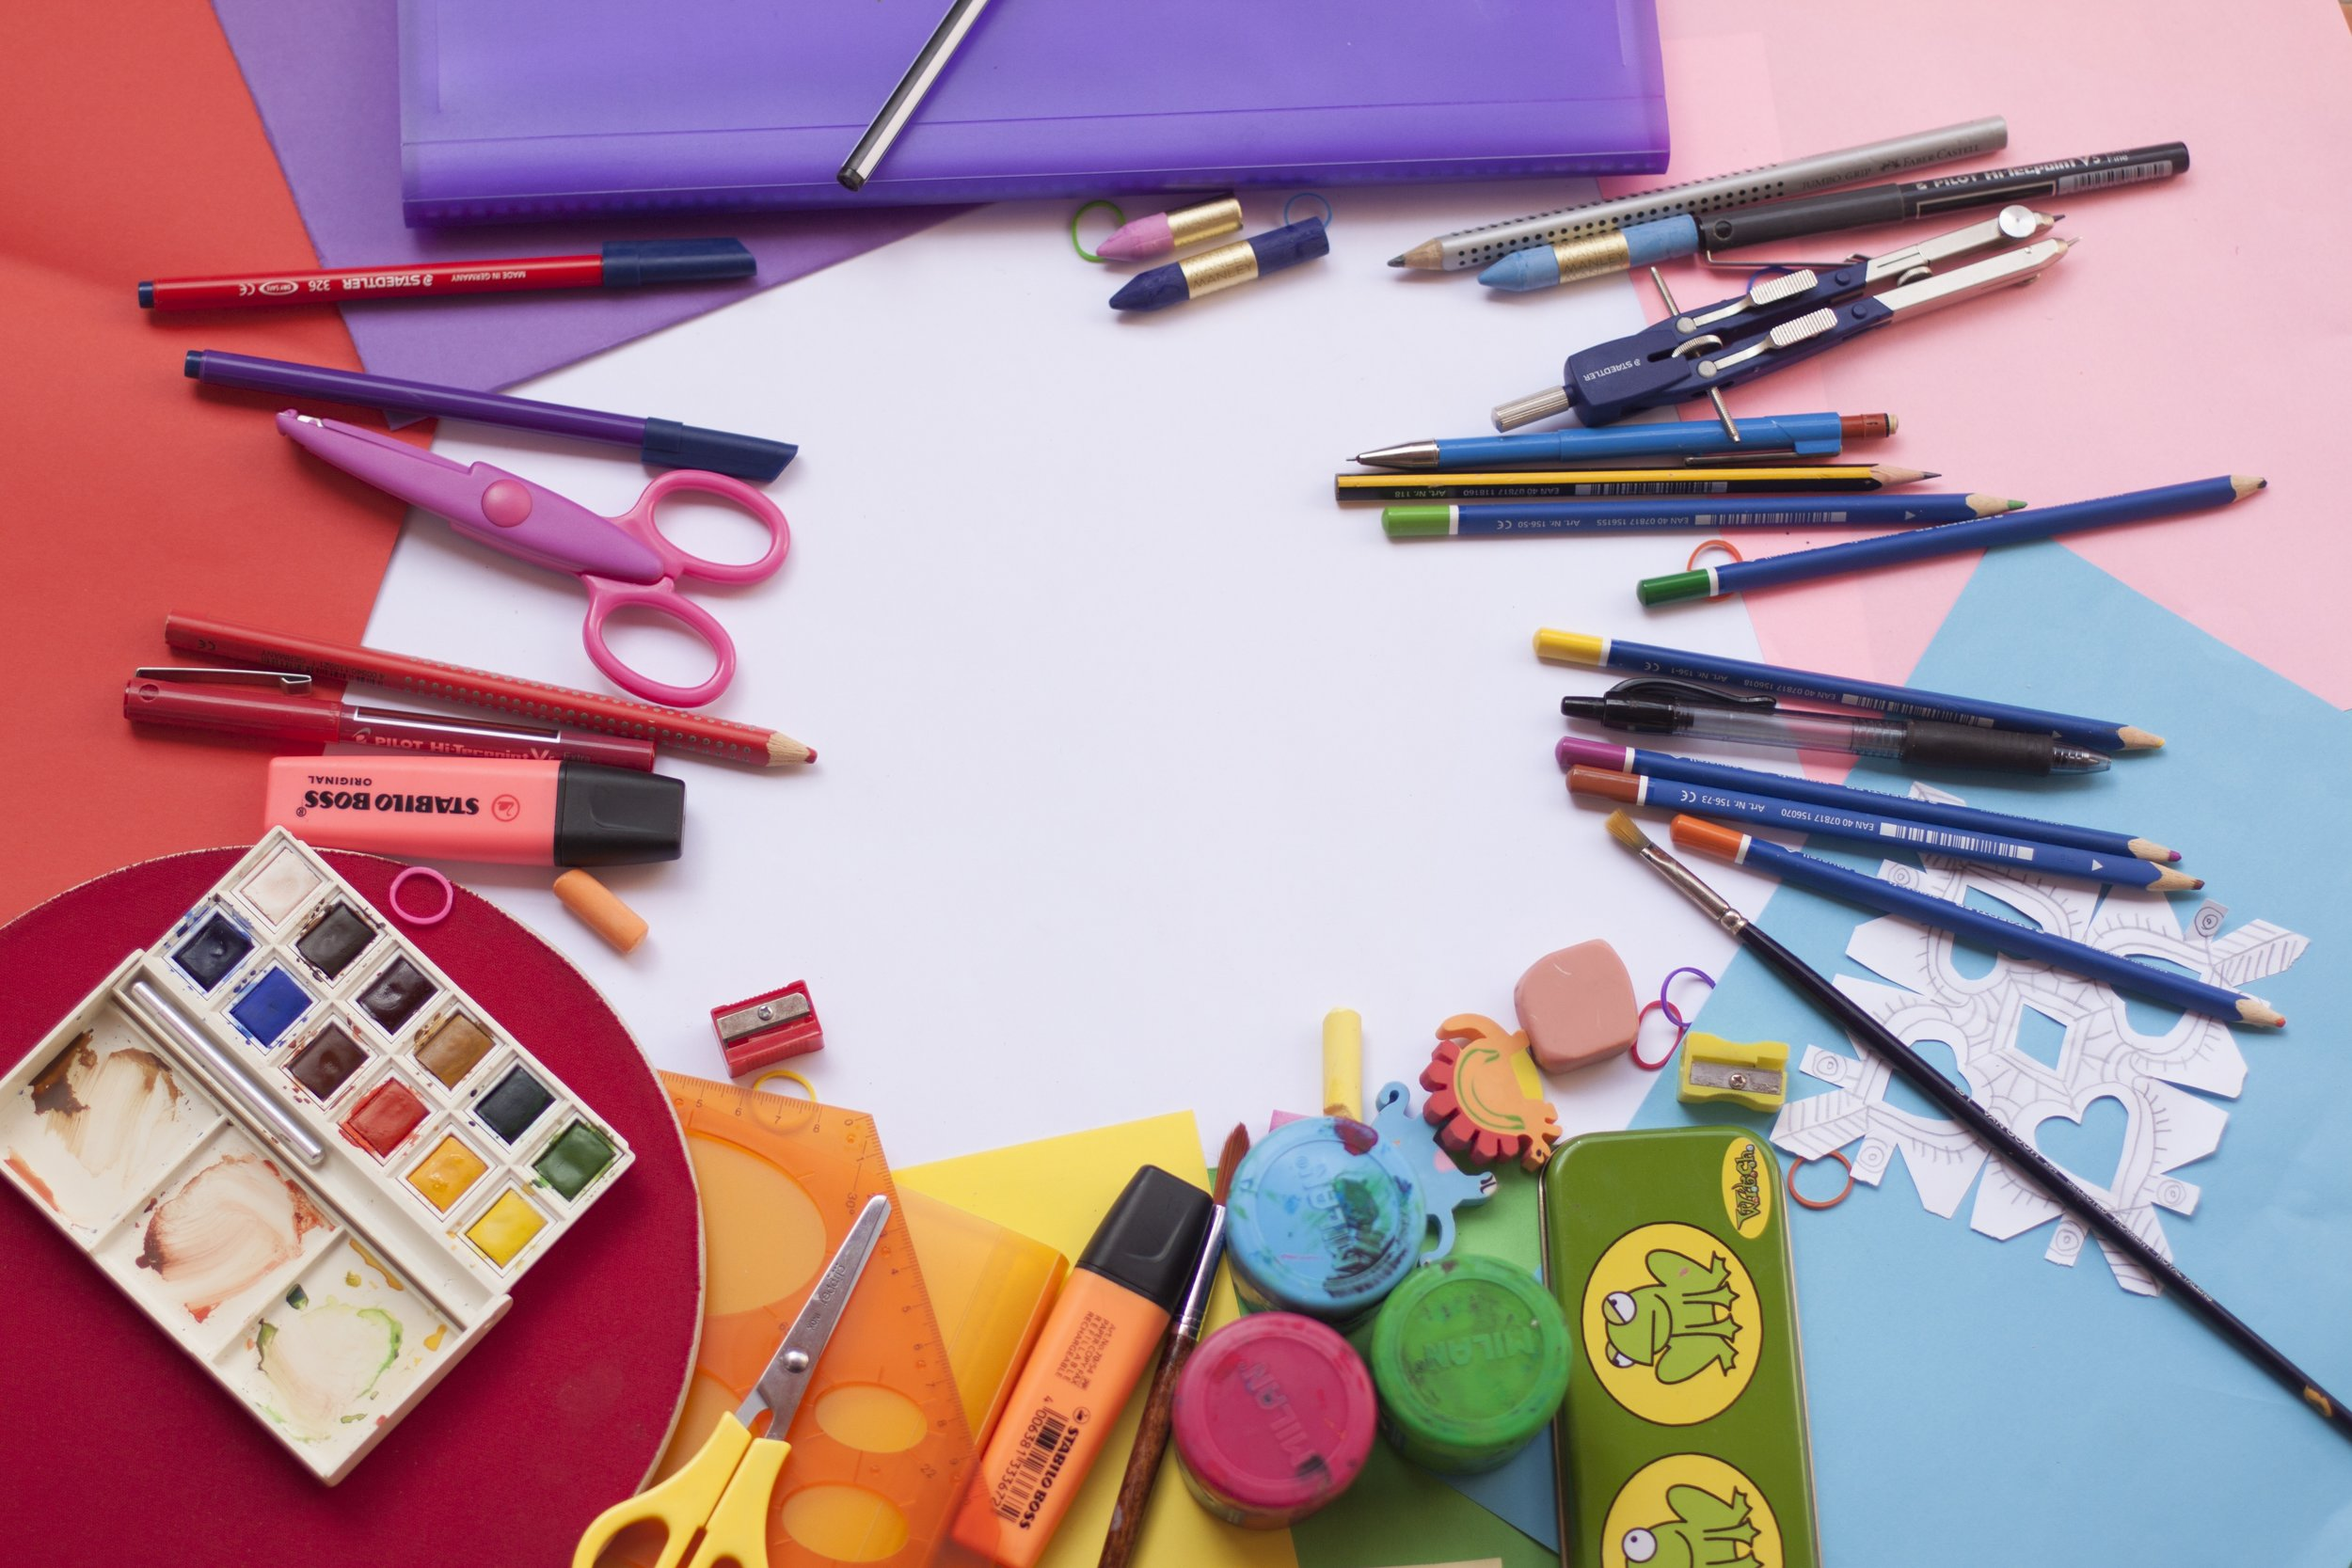 Paint brushes, paint, stamps and other art supplies in circle